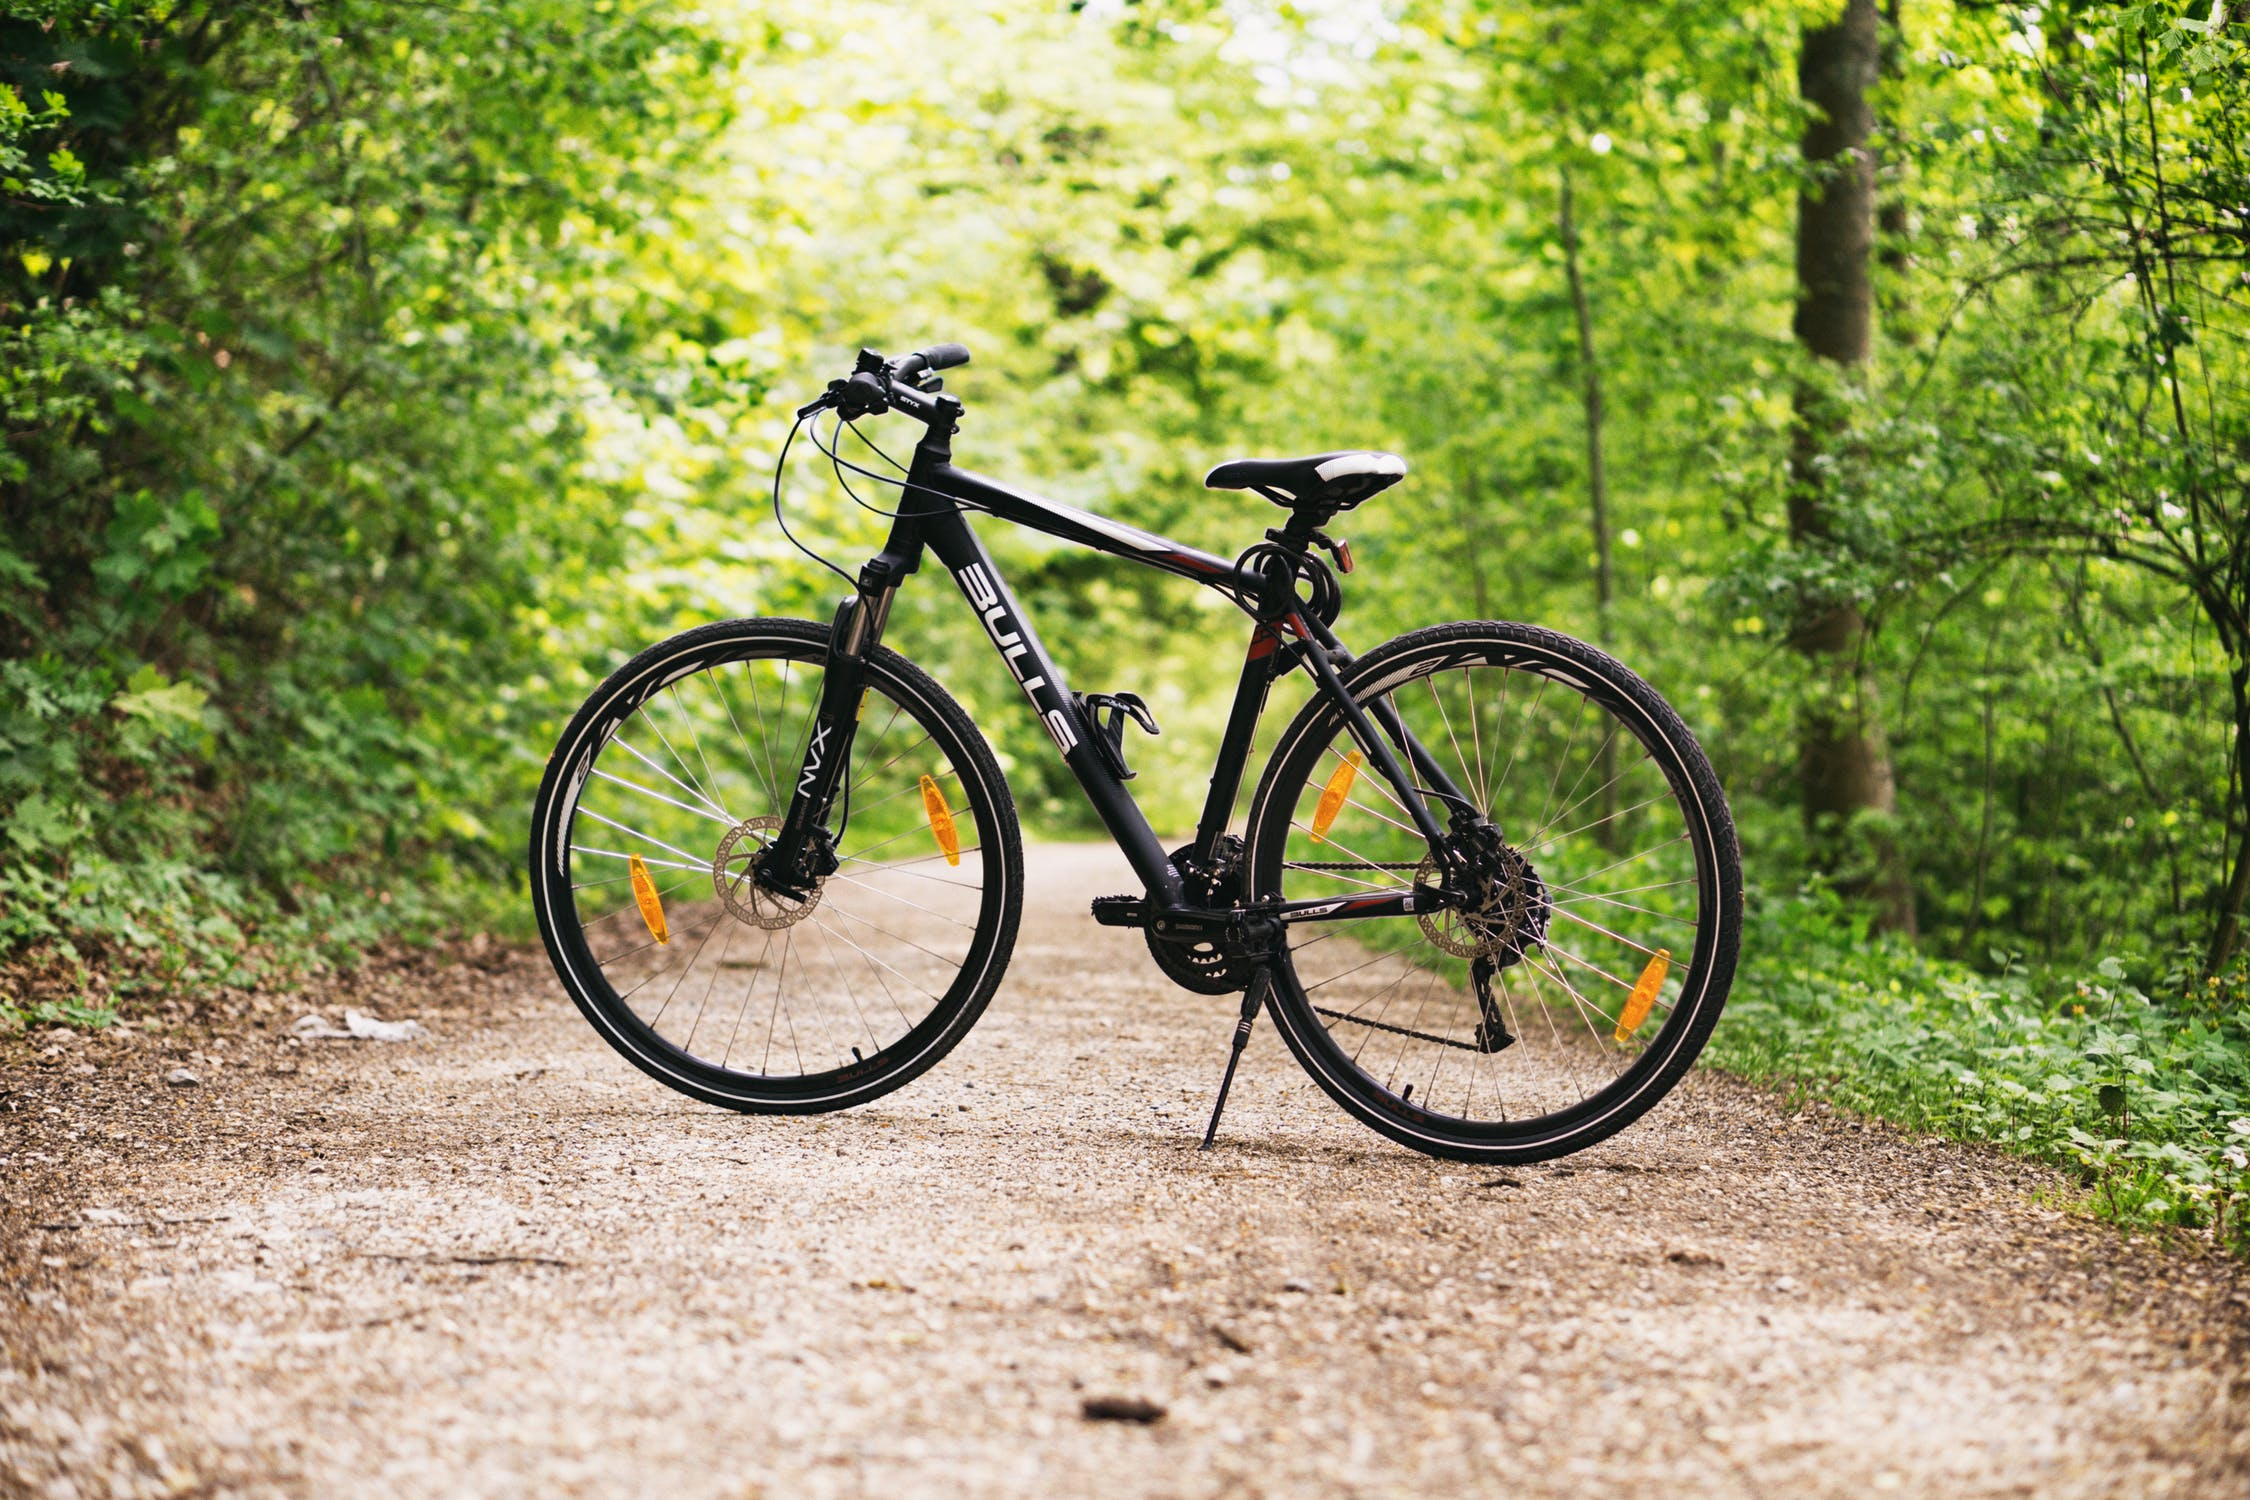 bicycle-dirt-road-green-trees